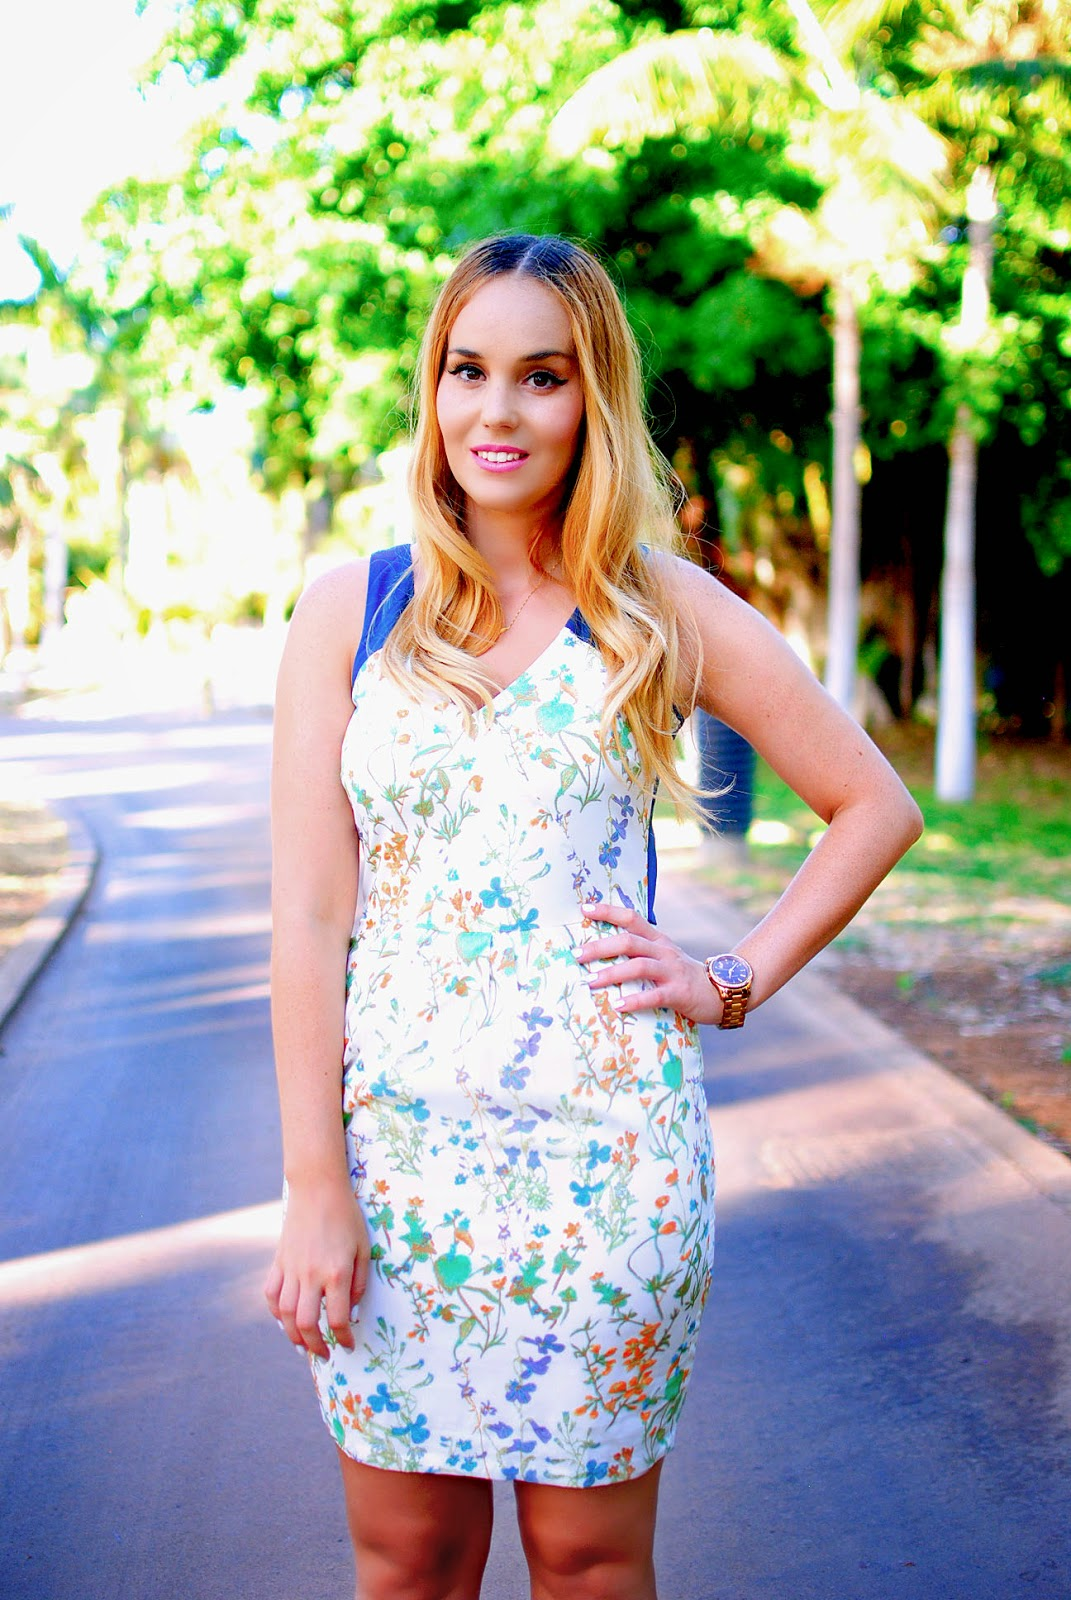 Nery hdez, botanical dress, sugarhill boutique, print floral